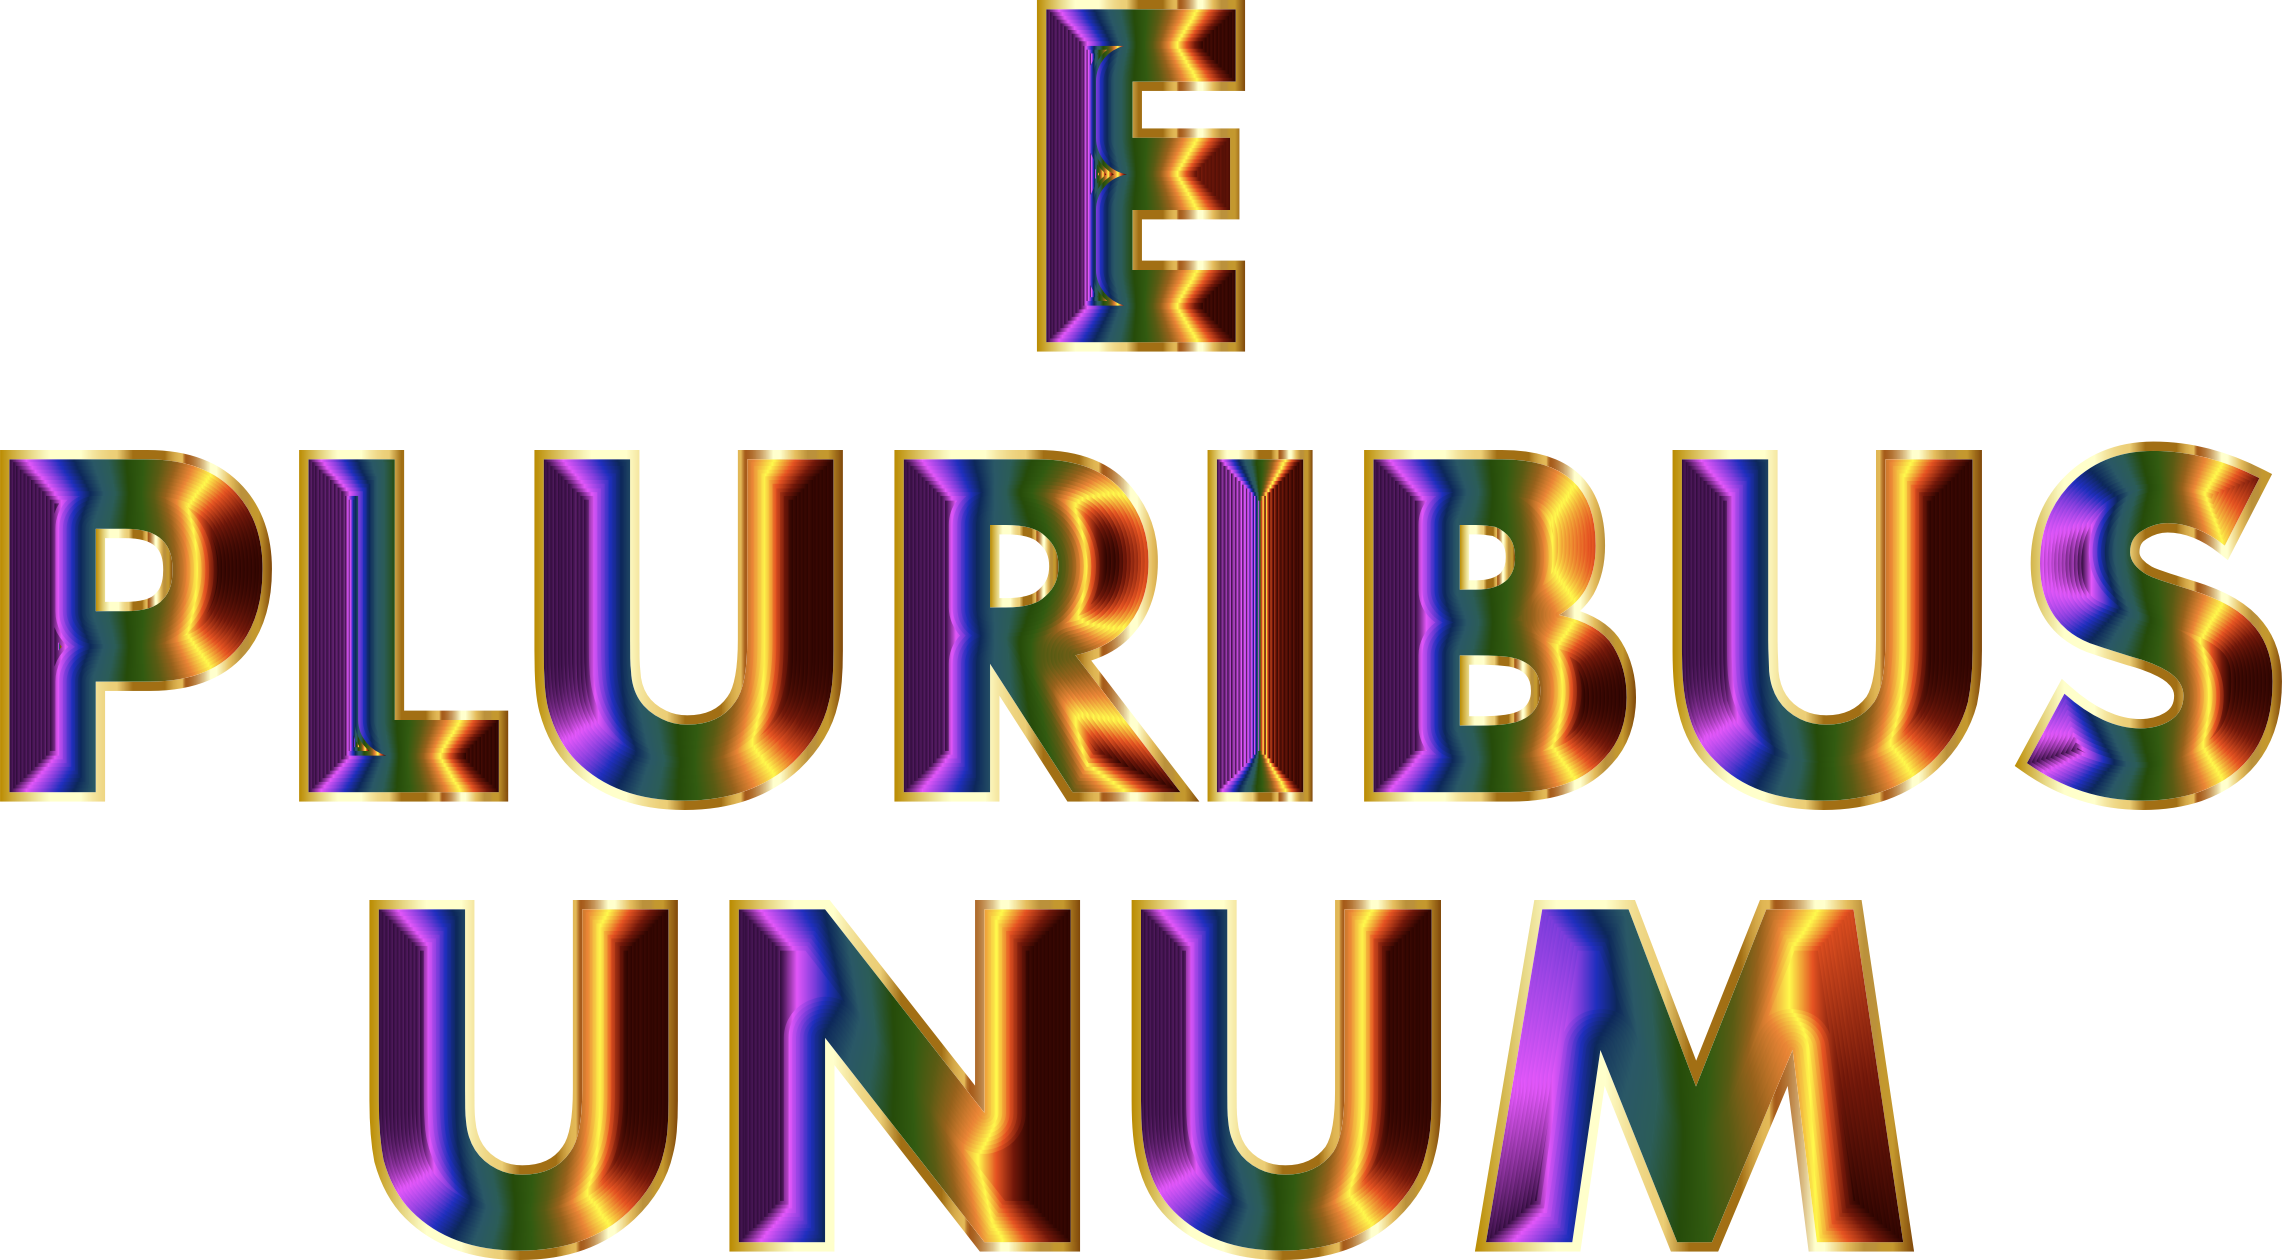 E Pluribus Unum Chromatic Typography No Background by GDJ